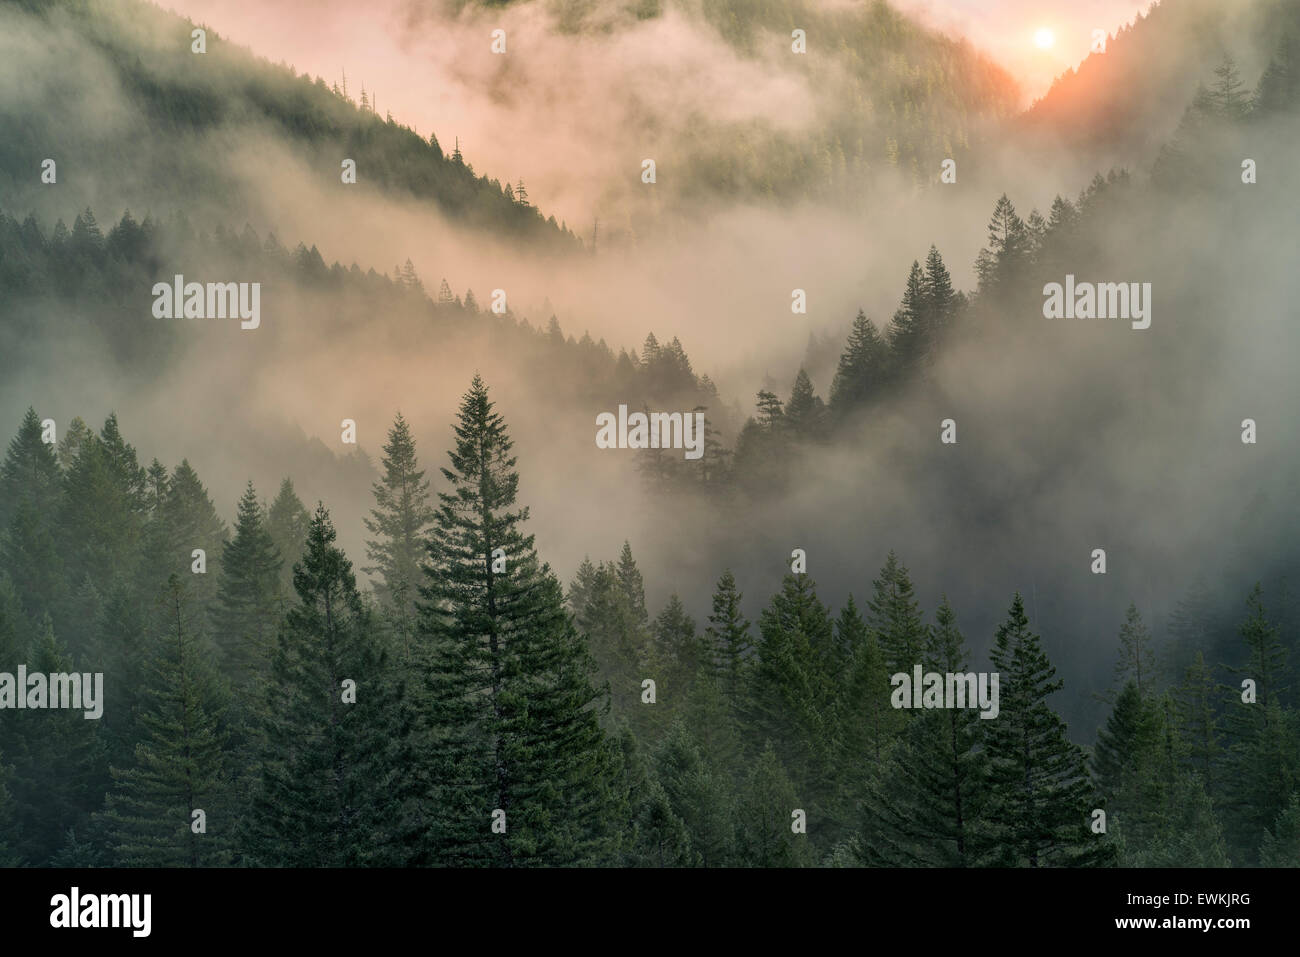 Sunrise through fog in mountains near Opal Creek, Oregon - Stock Image